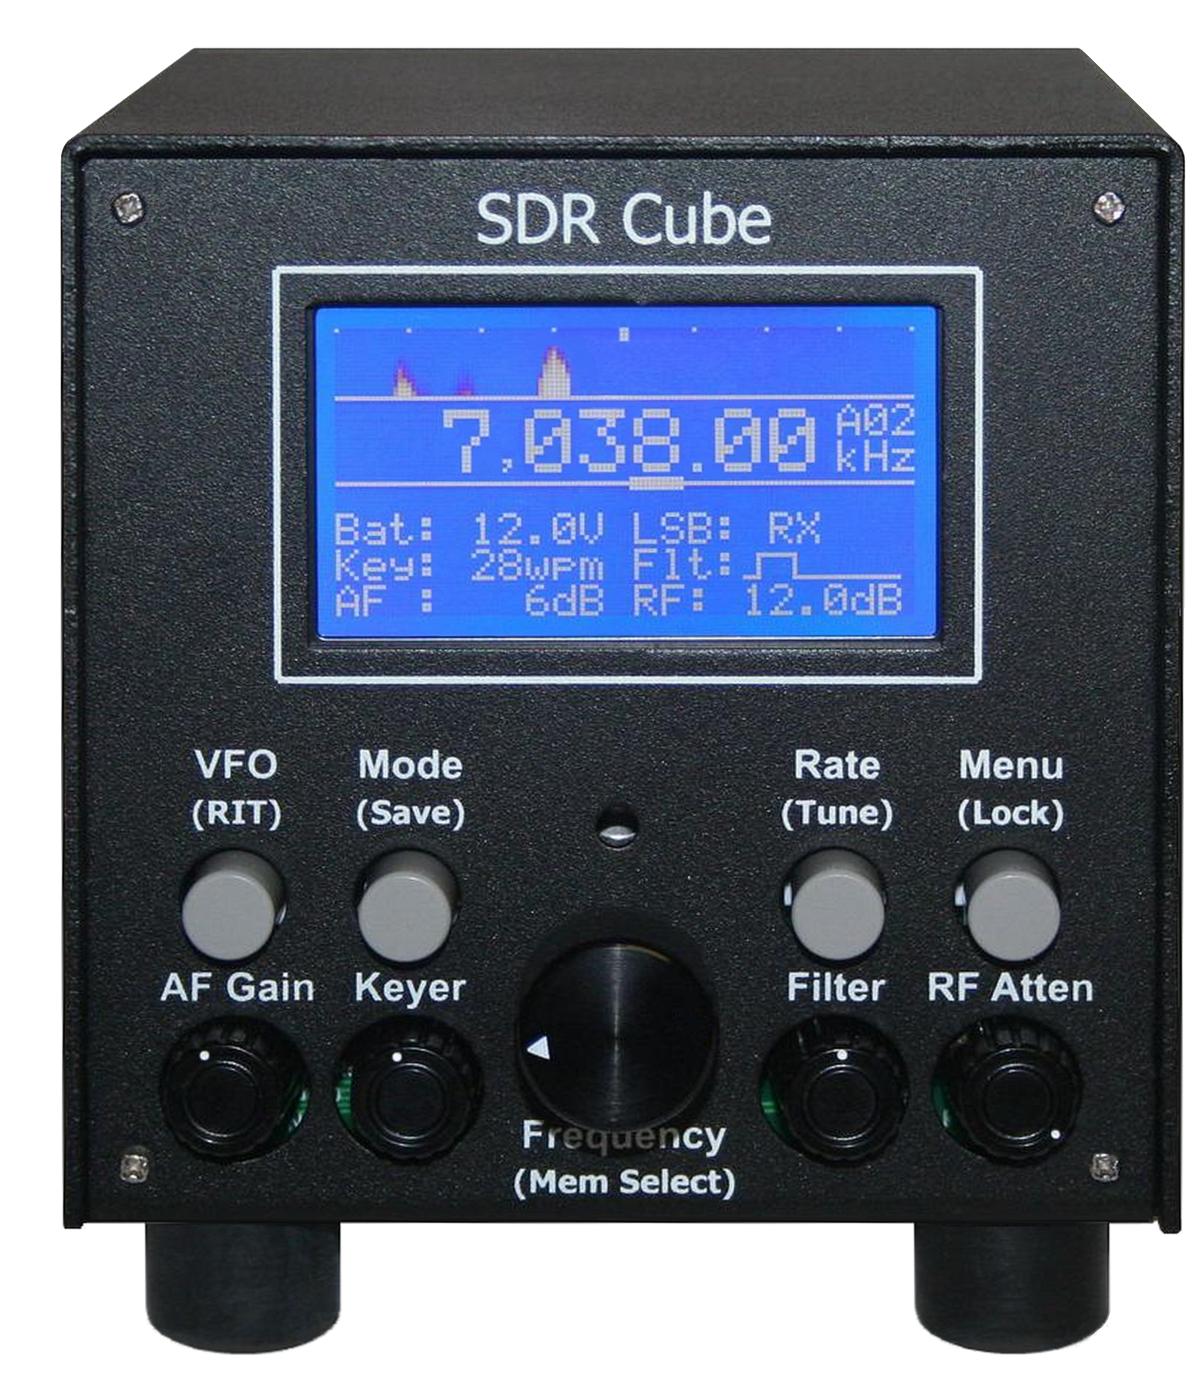 Pole Building Kits 40 X 64 X 16 together with 32621287785 also 131689322262 besides 172169066496 further 32610987885. on ham radio ssb transceiver kits